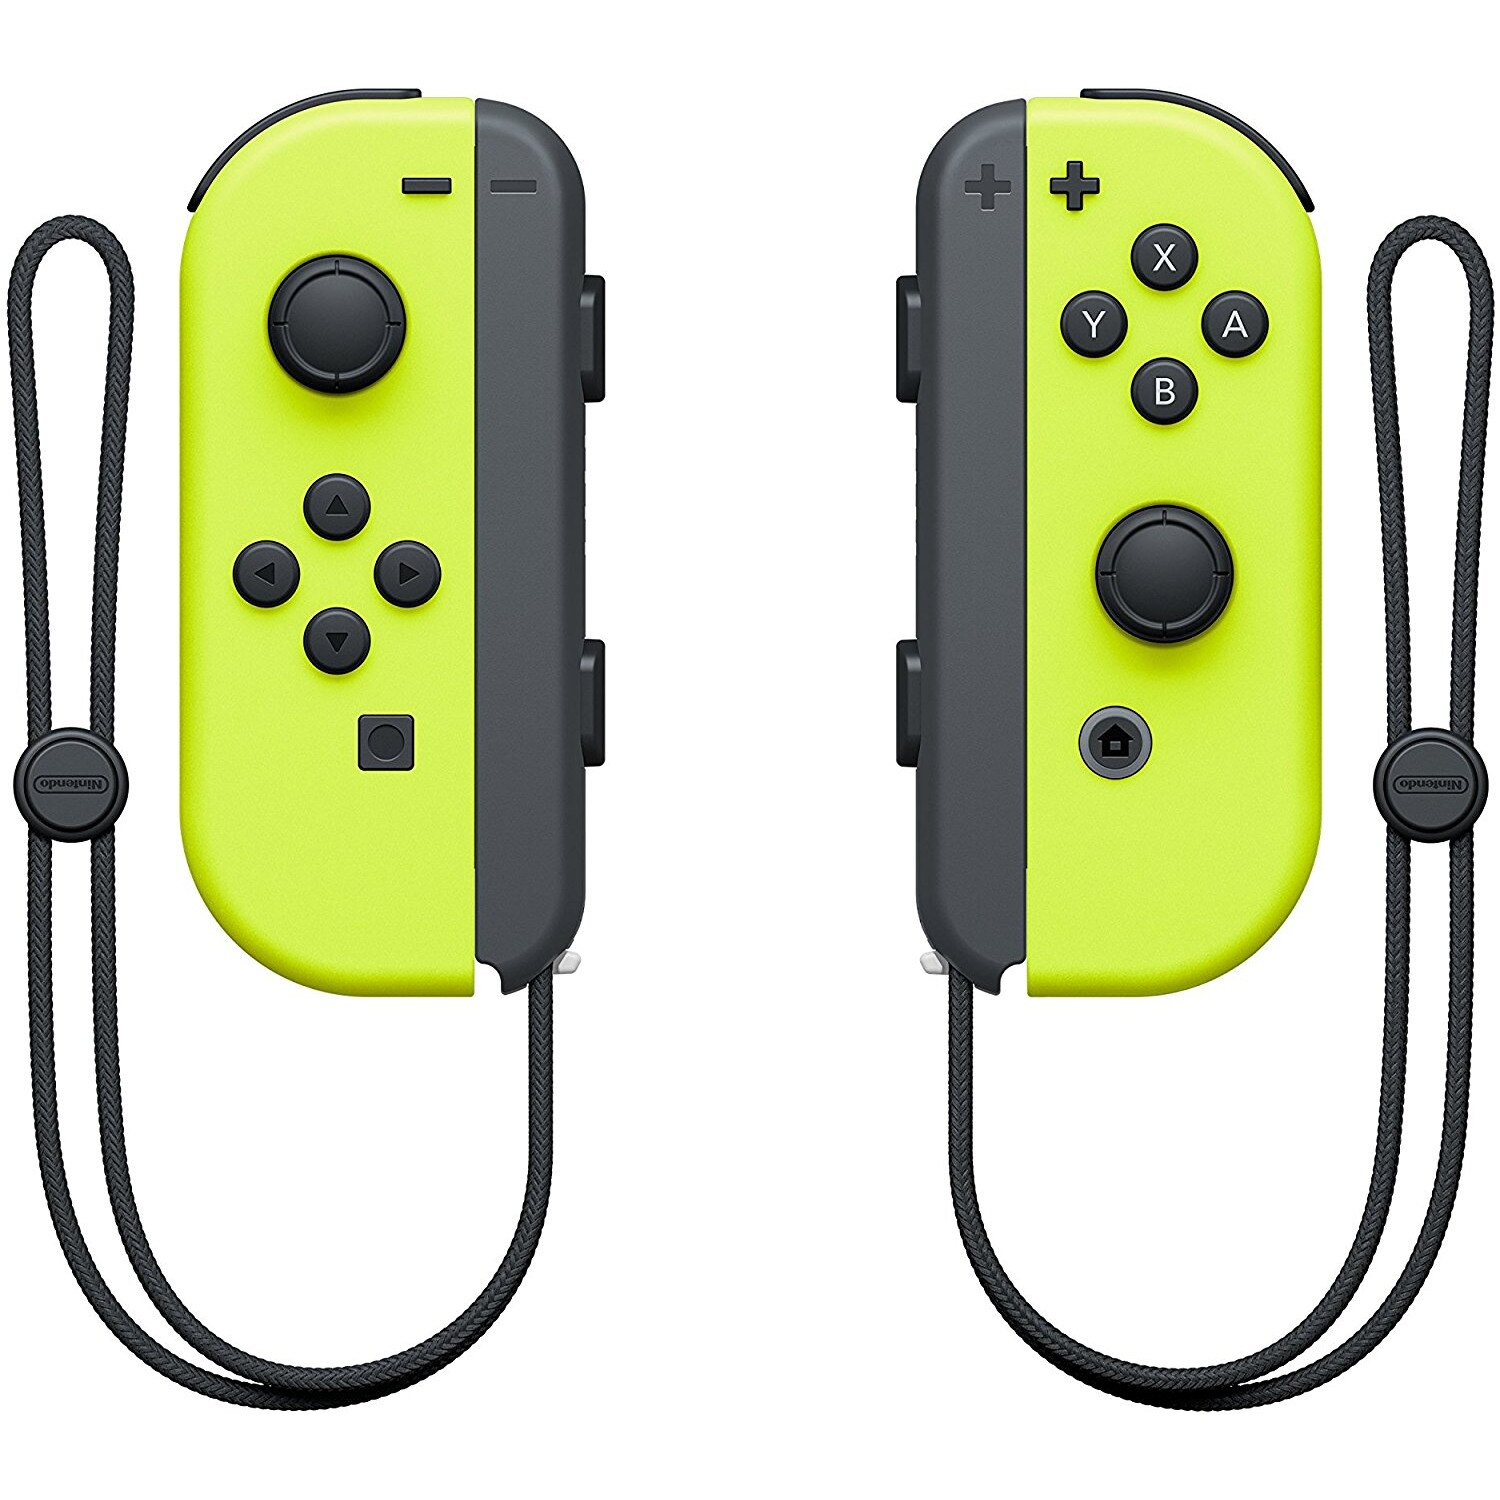 Nintendo Switch - Joy-Con - Neon Yellow - (Left/Right) Controllers 1